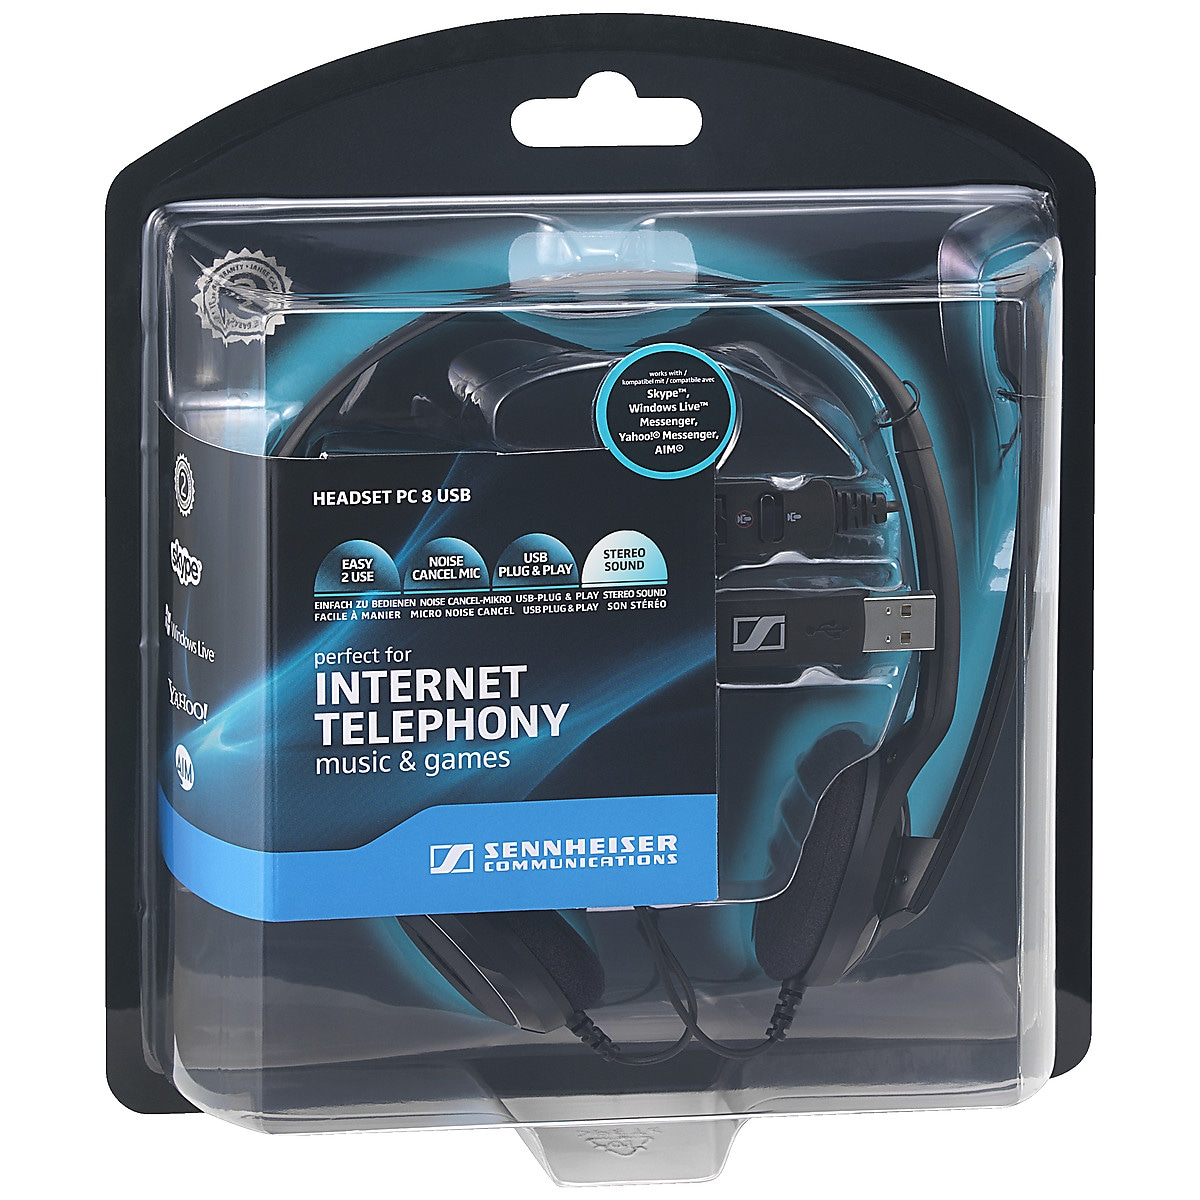 Headset Sennheiser PC-8 USB